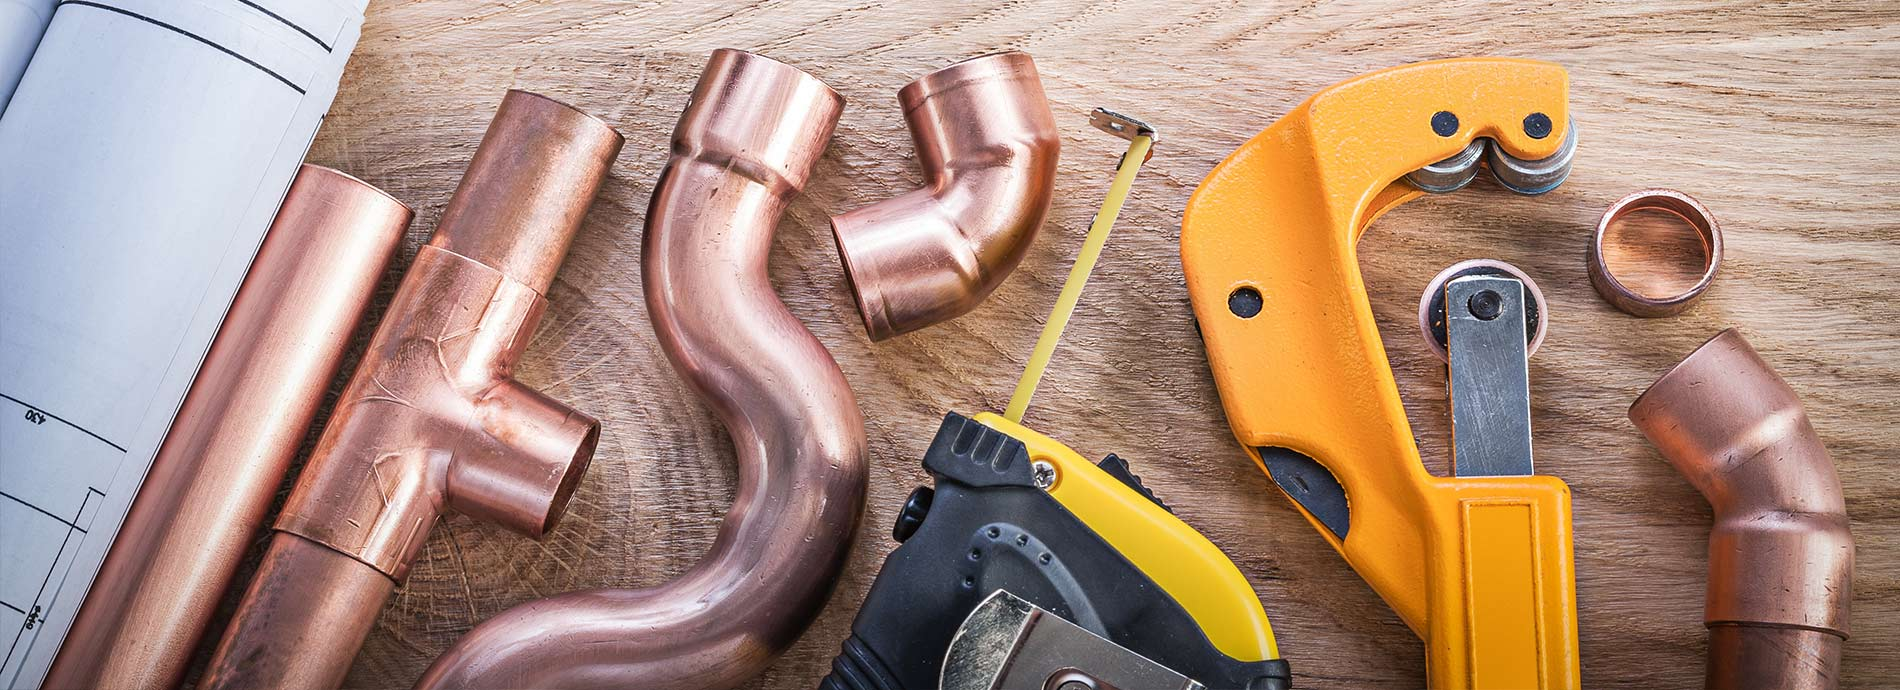 Backed by 15 years of experience- ABC Plumbing provides quality service at a reasonable price